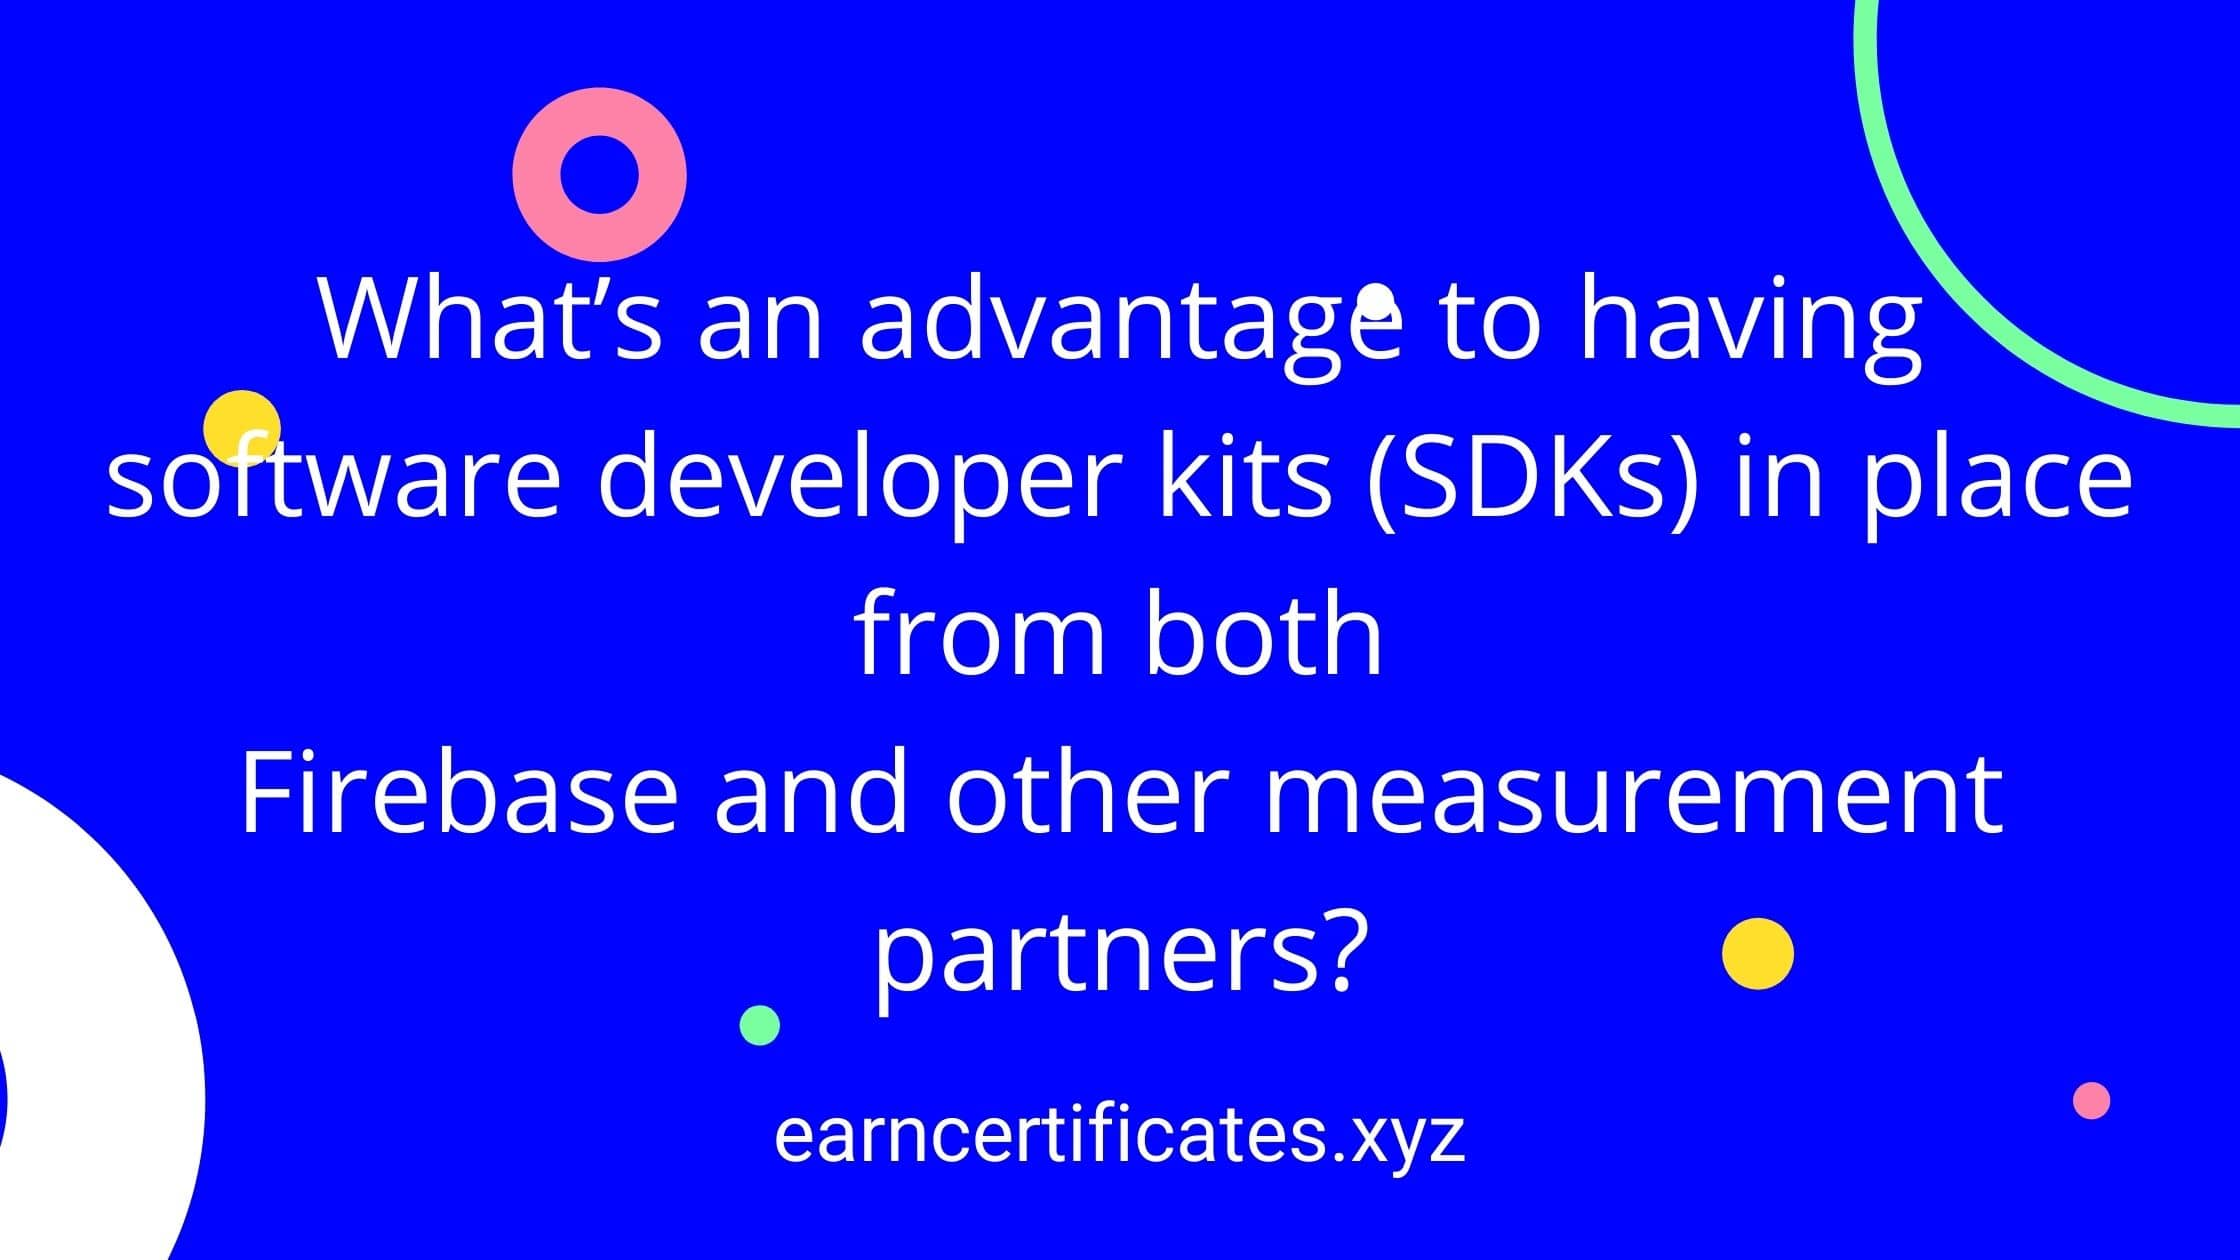 What's an advantage to having software developer kits (SDKs) in place from both Firebase and other measurement partners?